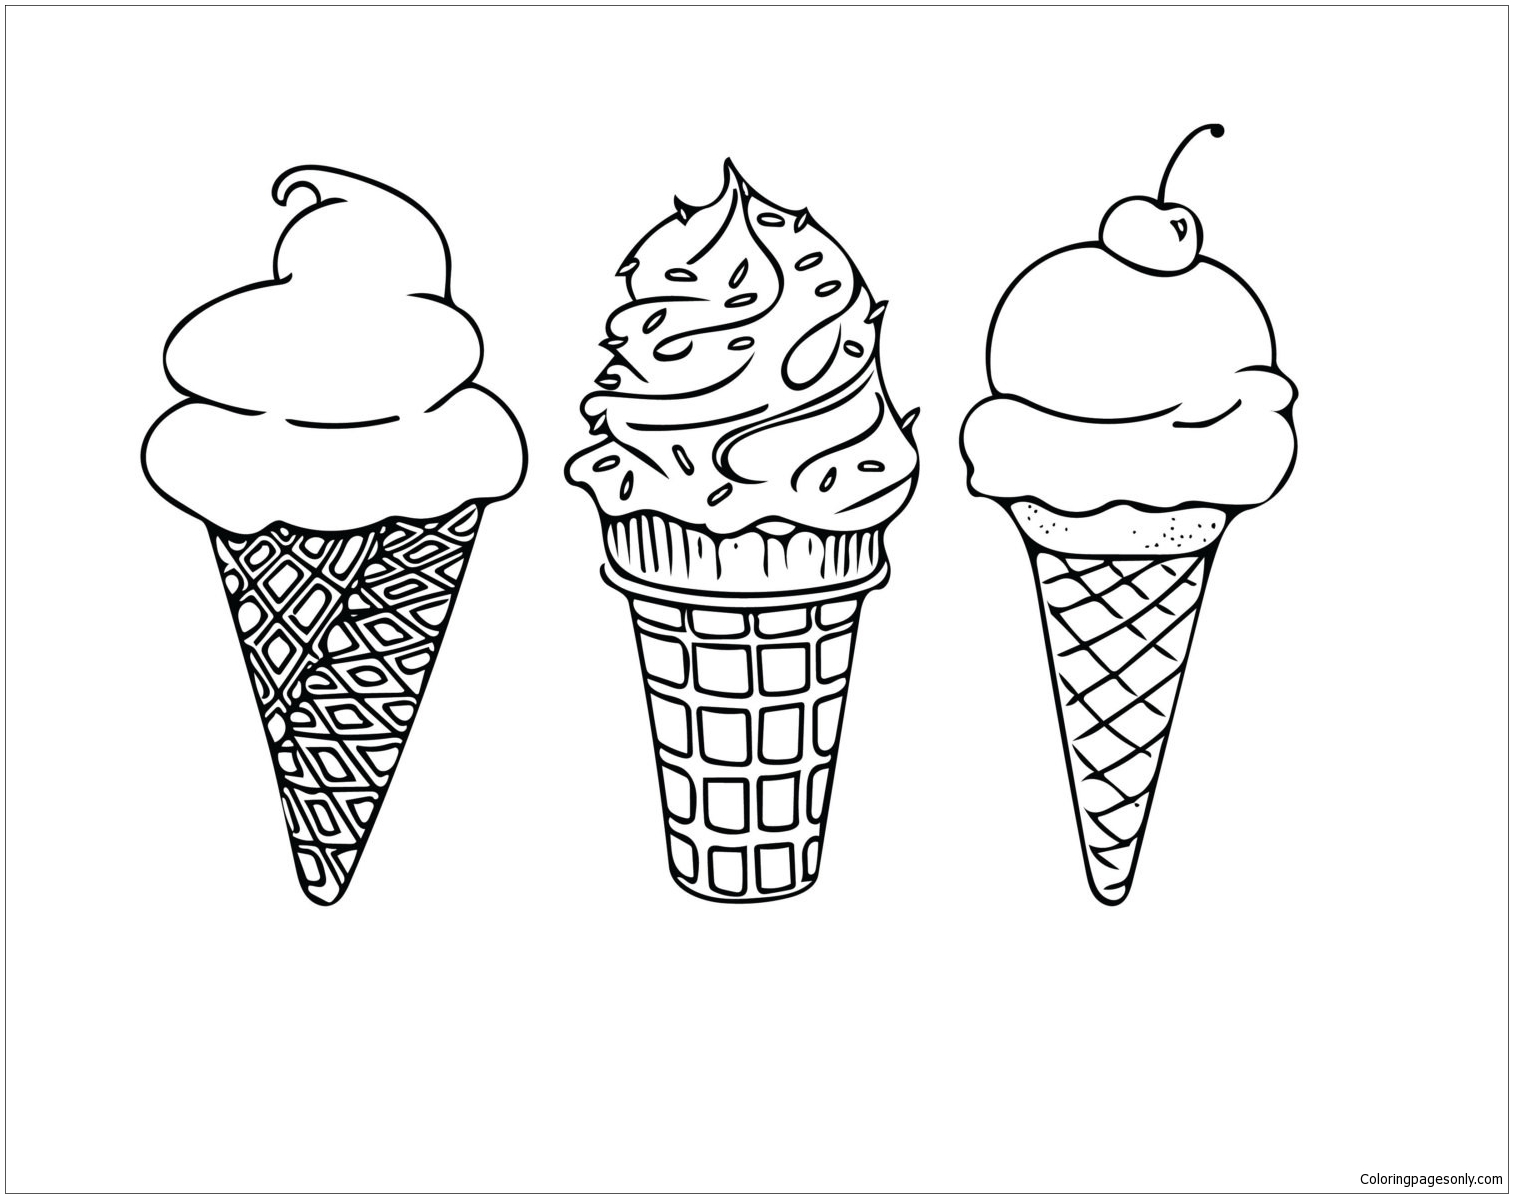 - Ice Cream 4 Coloring Page - Free Coloring Pages Online